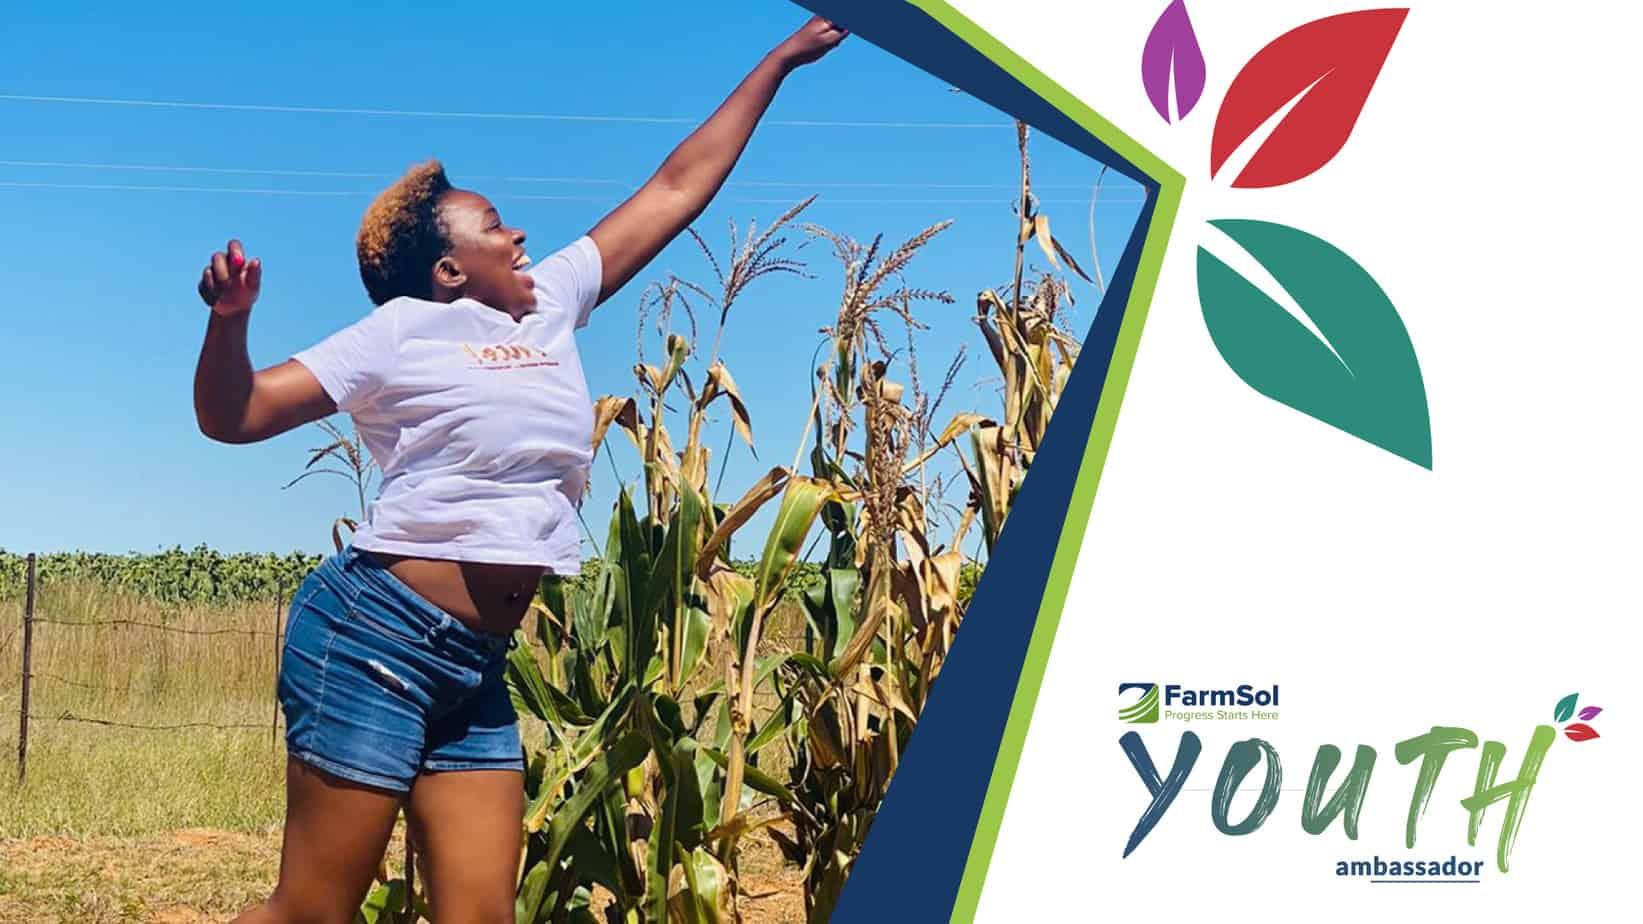 Mariam Kgopa's business is expanding with the help of Farmsol. Photo: Supplied/Farmsol